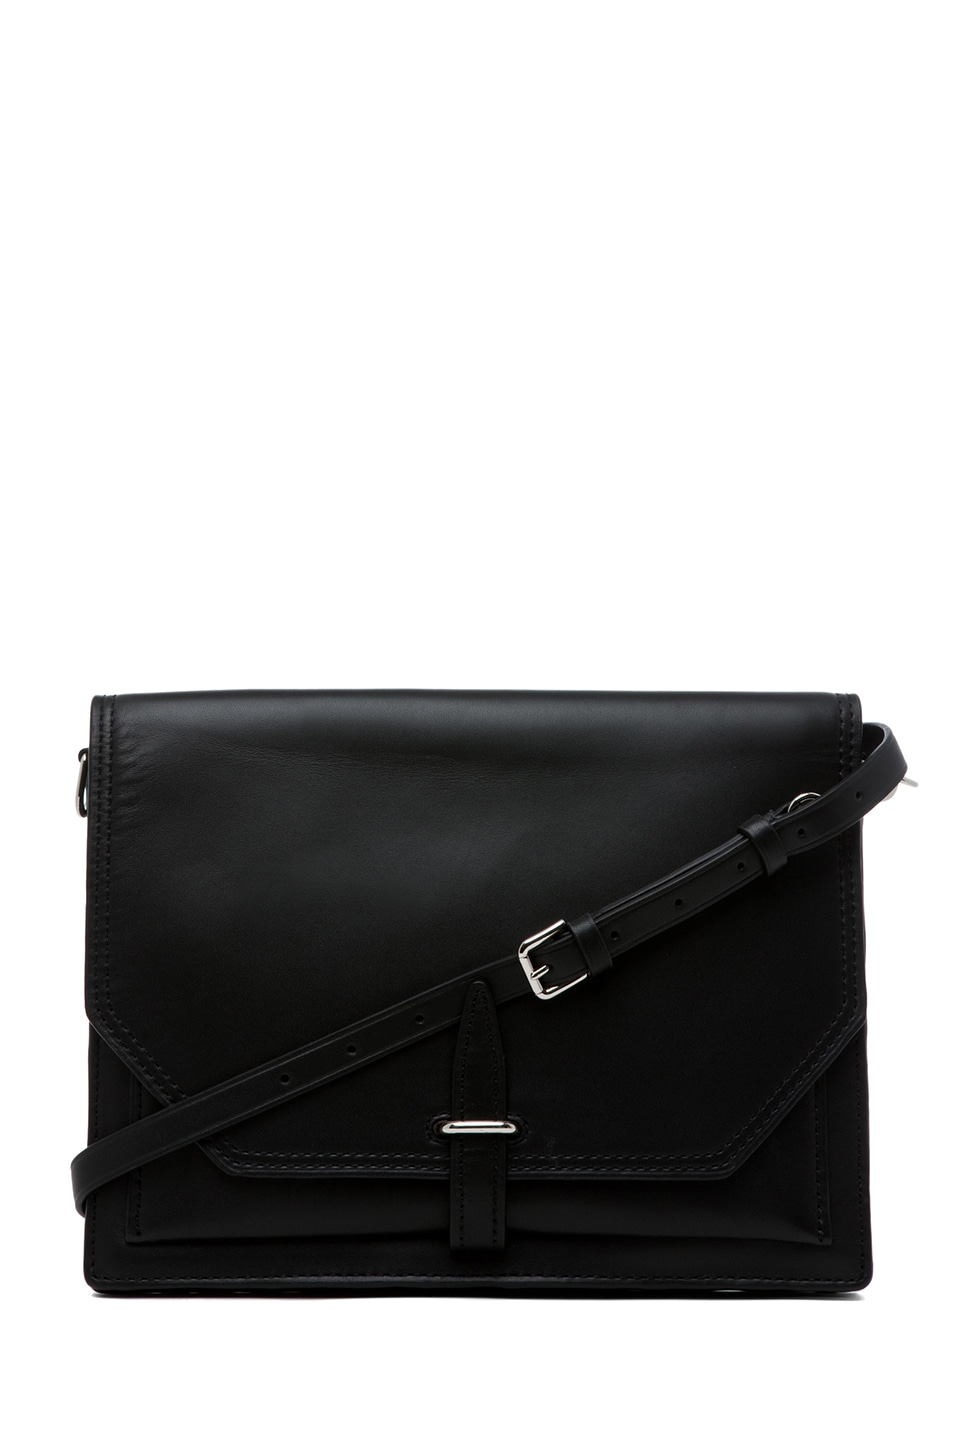 Image 1 of 3.1 phillip lim Polly Double Compartment Crossbody in Black